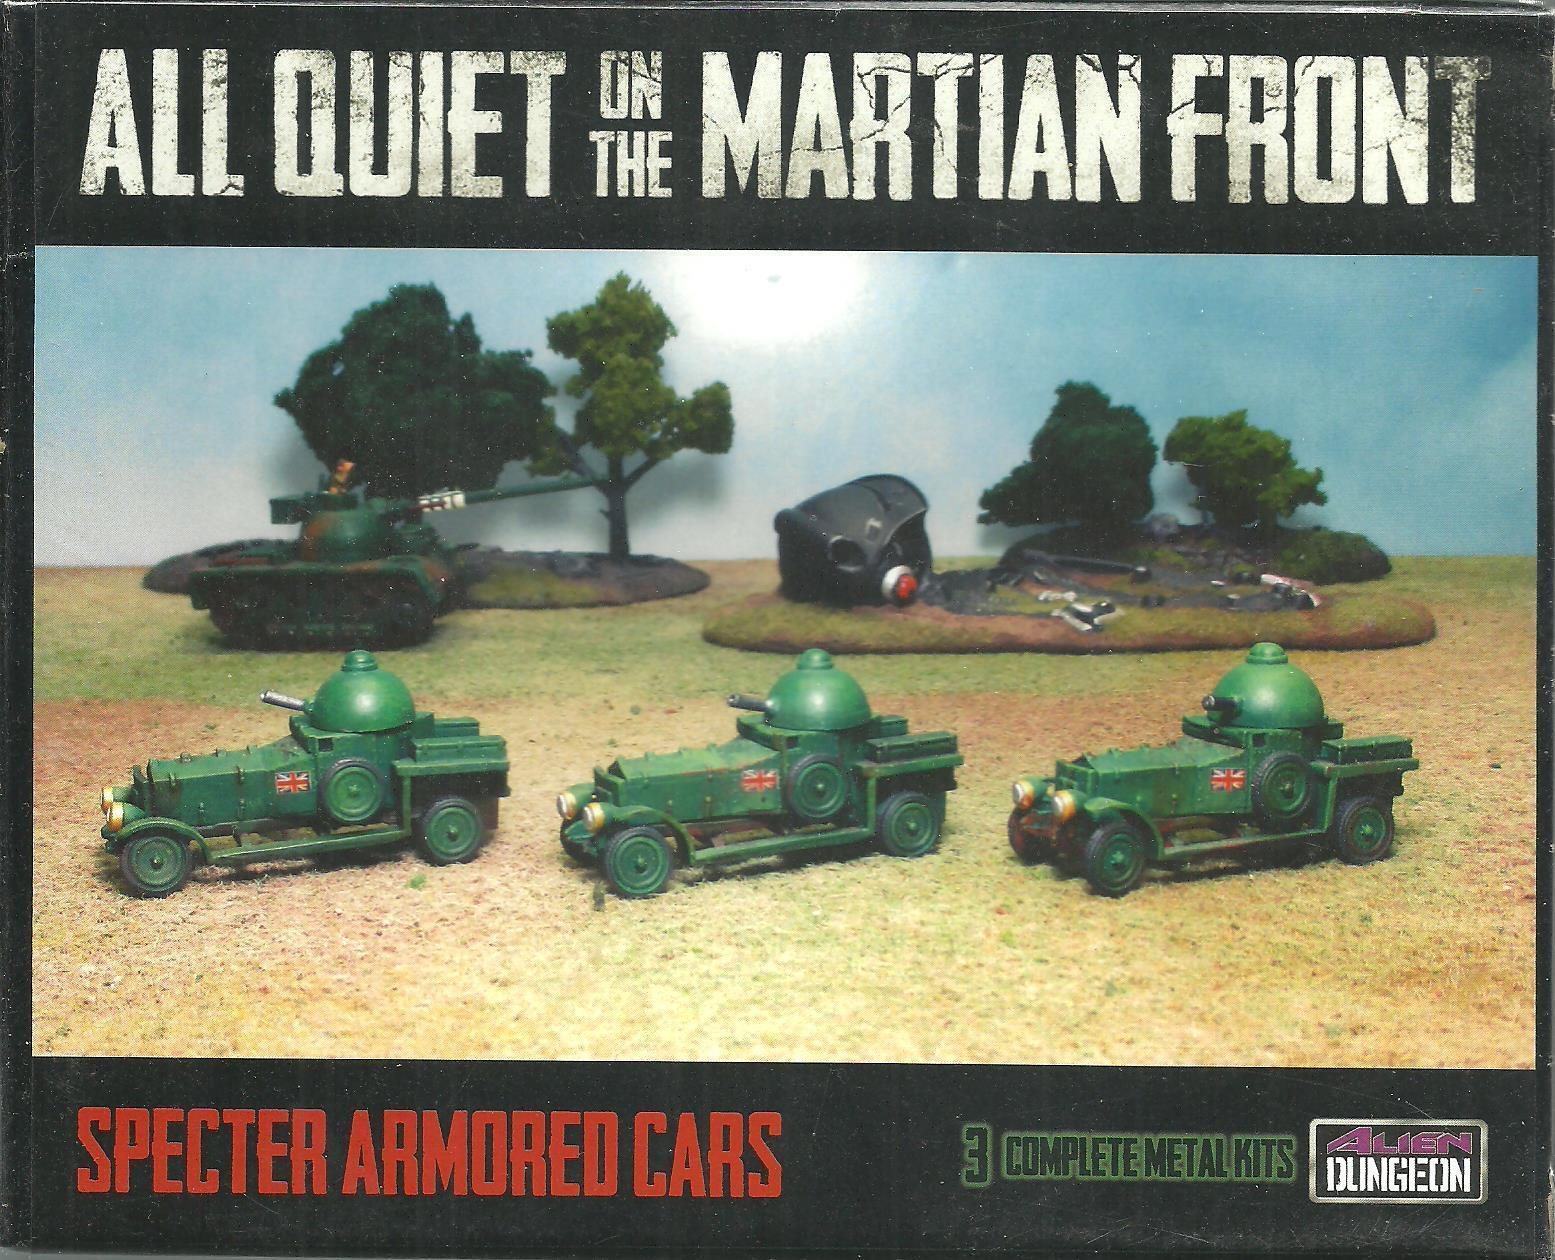 Aqmf bf007 specter armoured cars for aqmf, alien dungeon, new